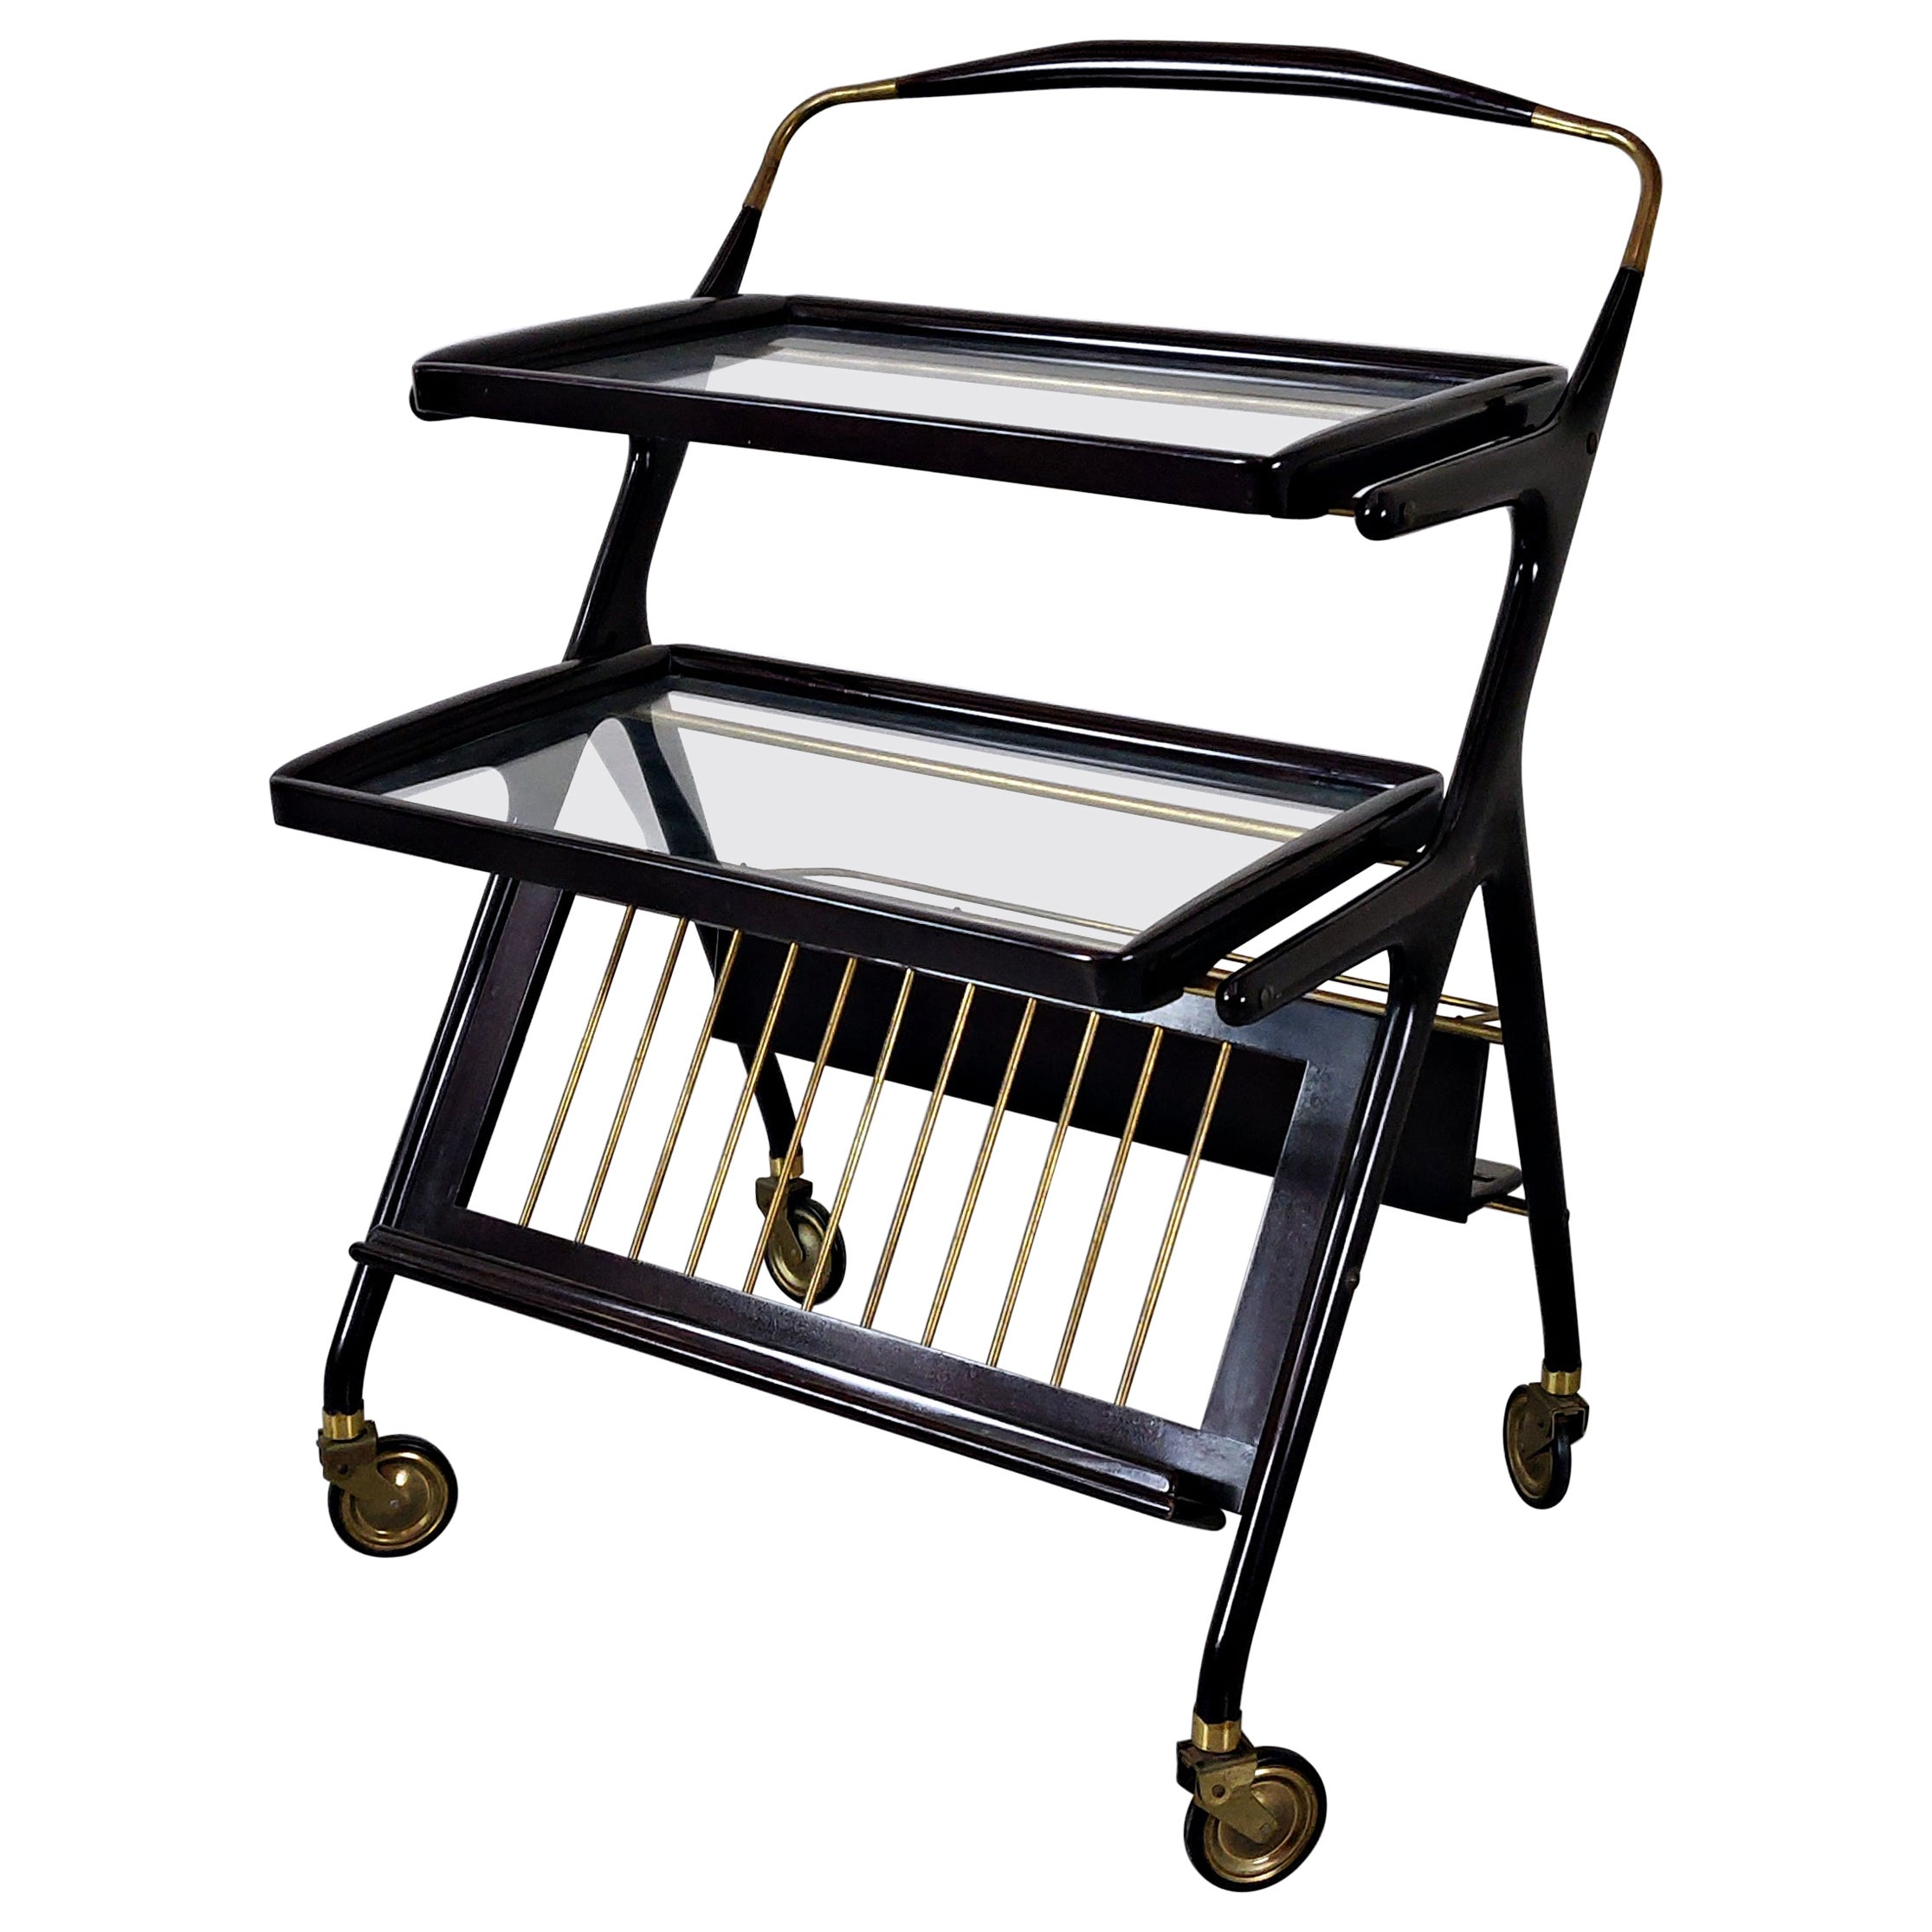 Italian Trolley Attributed to Cesare Lacca, 1950s